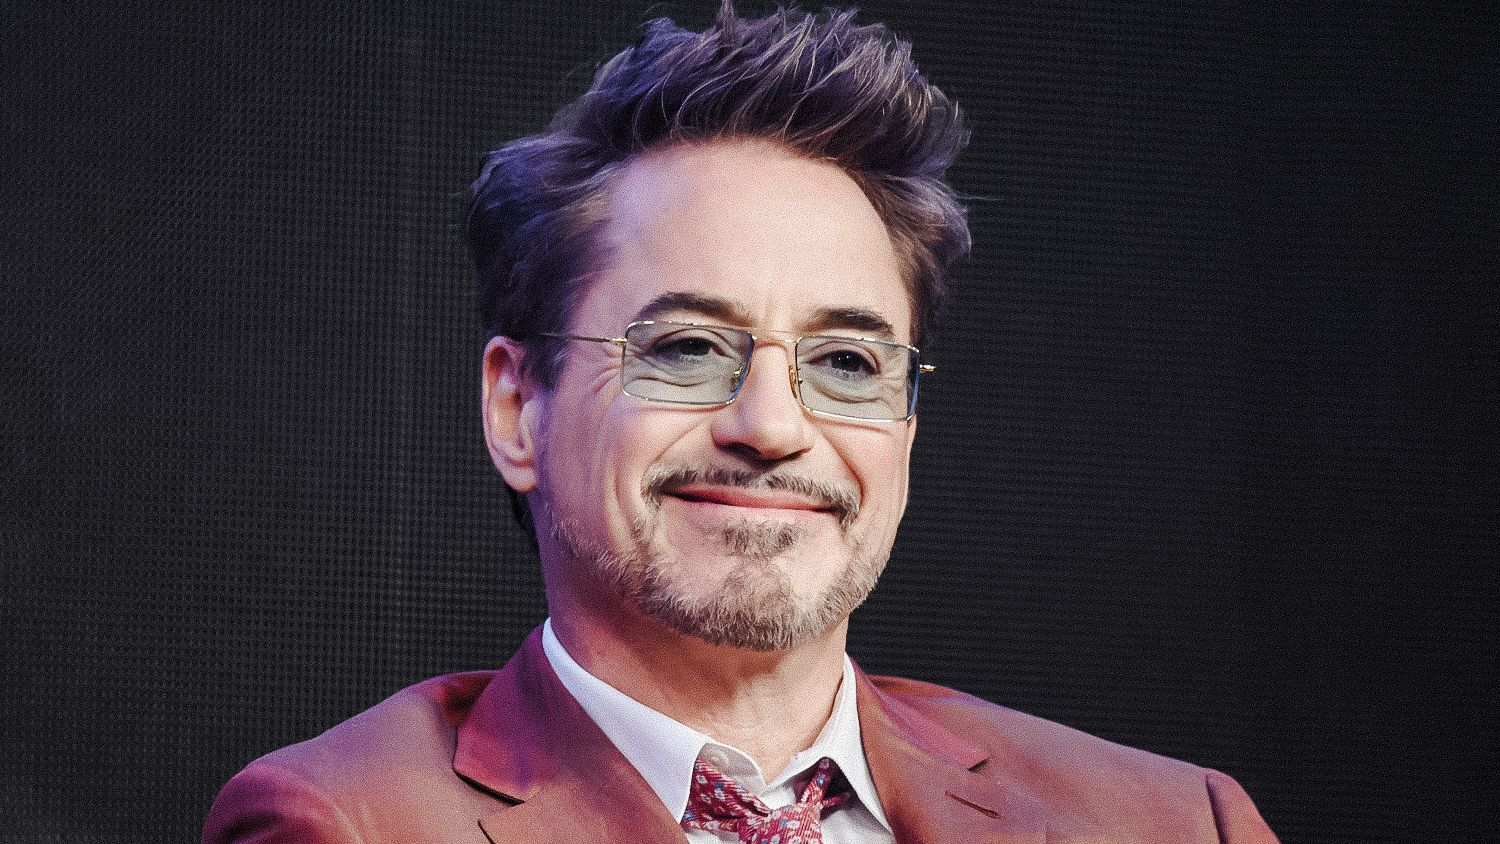 Robert Downey Jr. Starts Venture Fund To Save the Planet